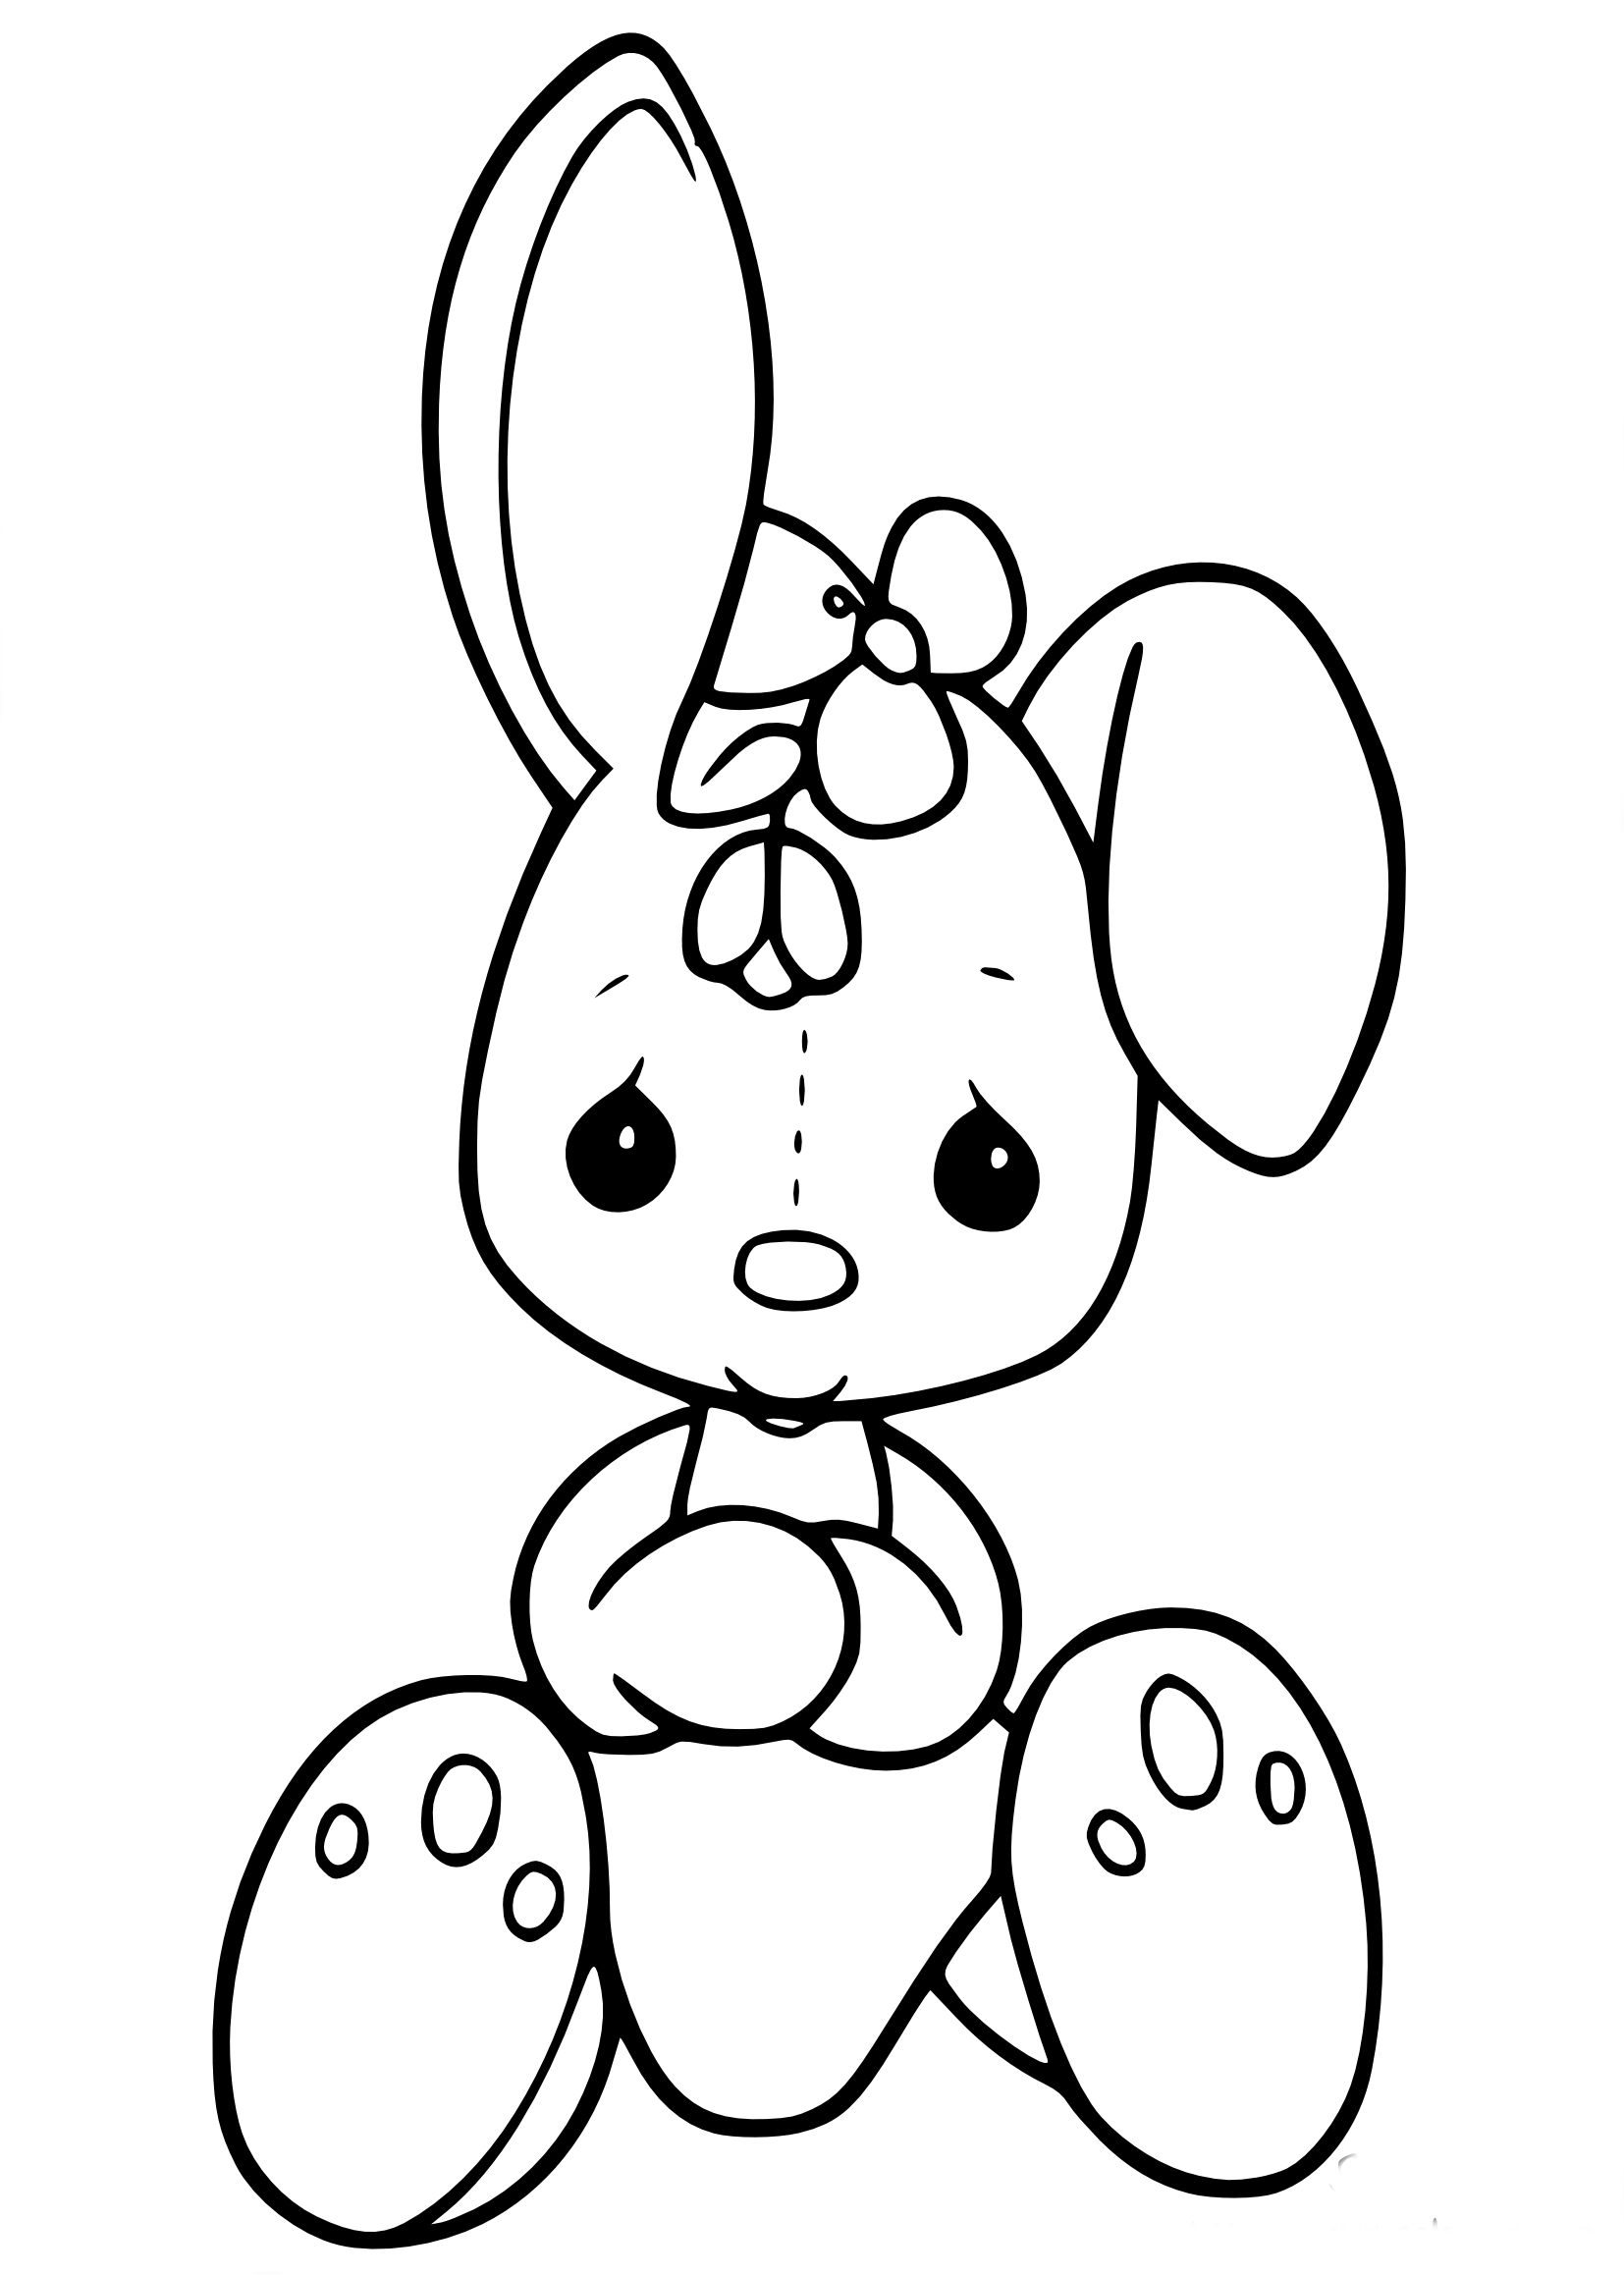 Bunny rabbit coloring pages printable sketch coloring page - Coloriages lapin ...